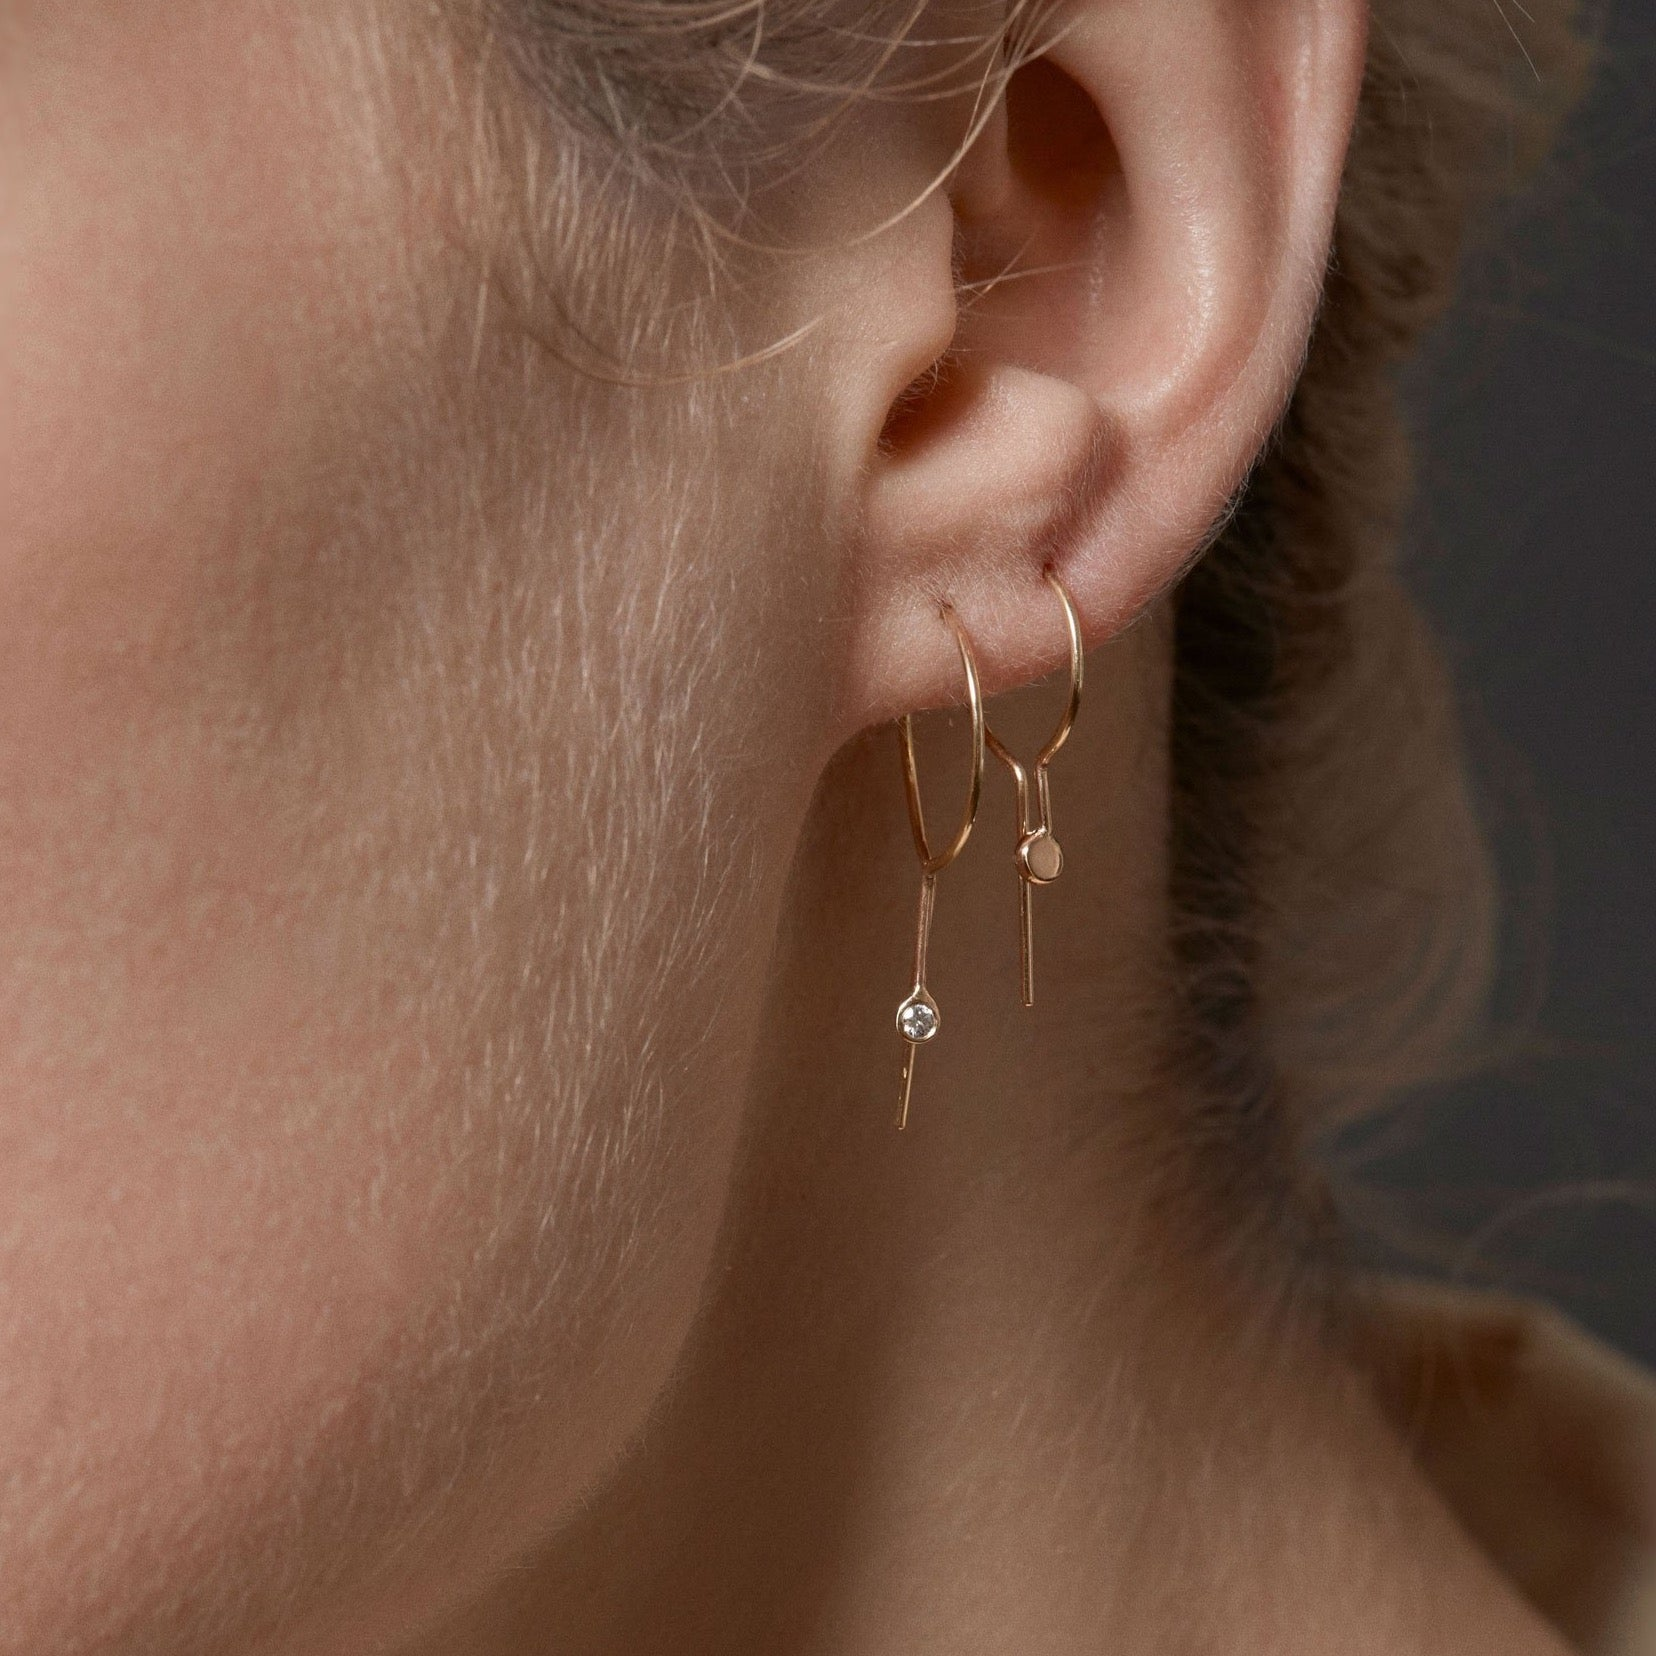 CIRCLE KEY EARRING - 14K YELLOW GOLD